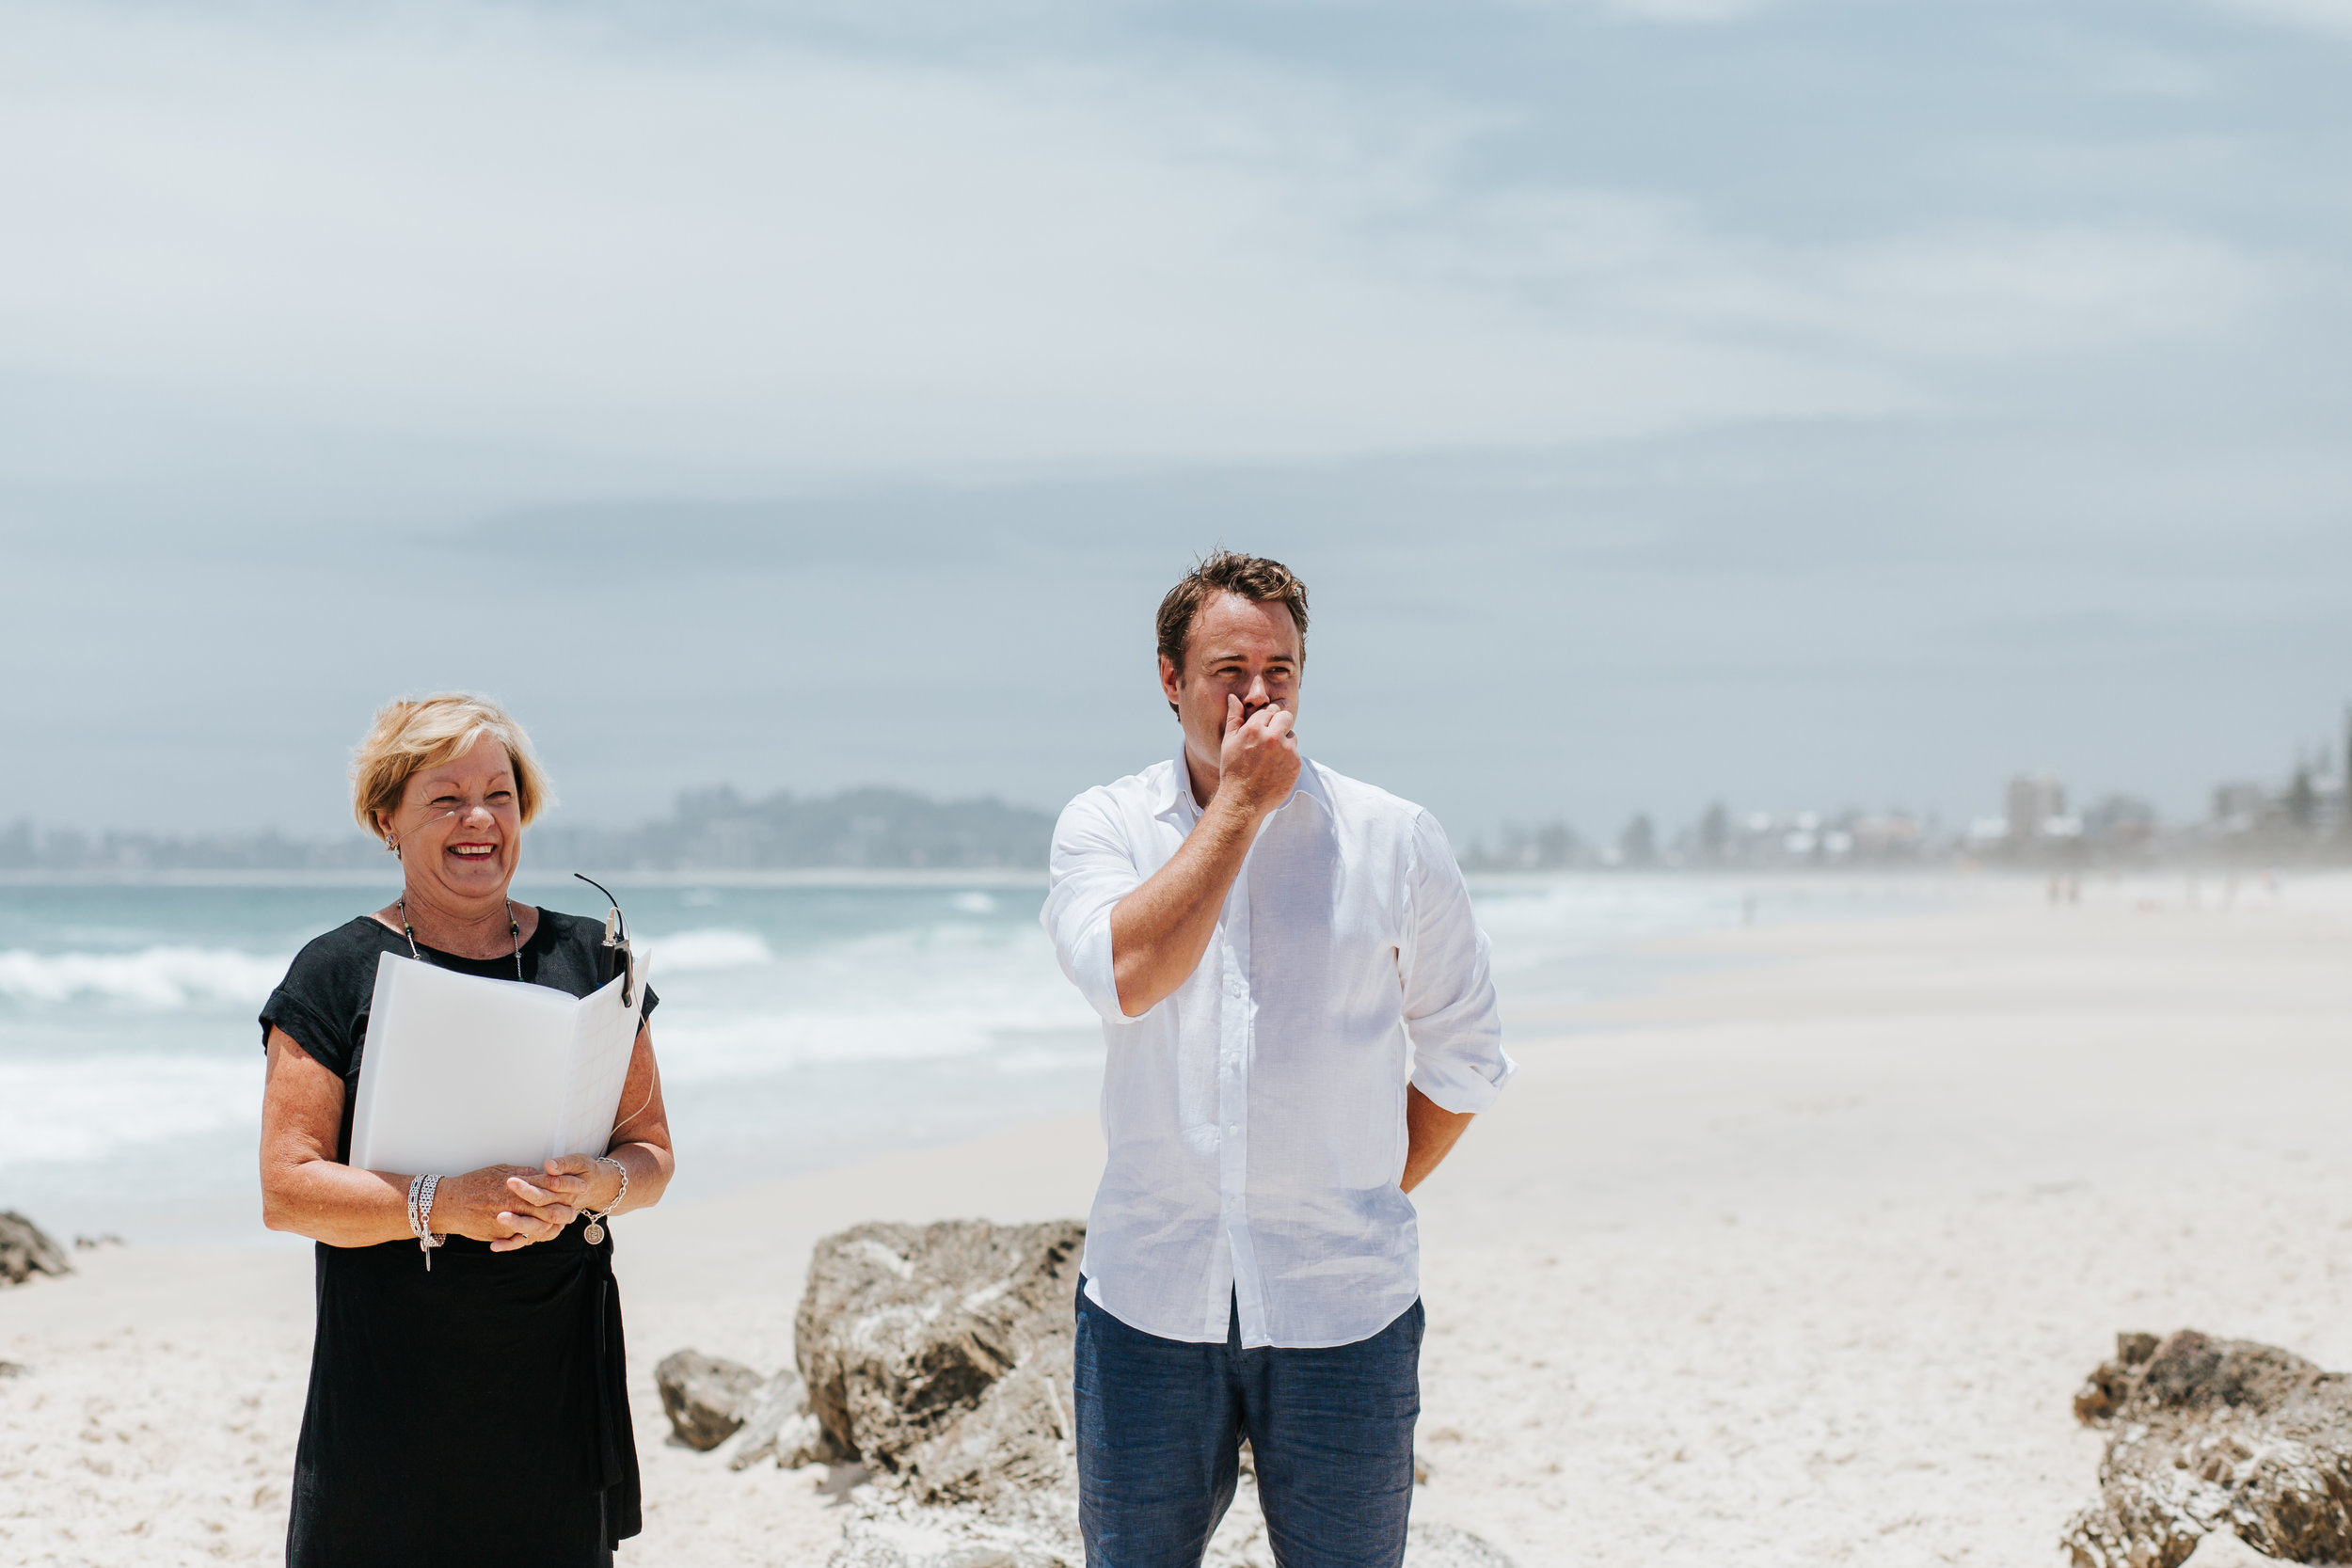 Brisbane family photographer kym renay.walsh.wed 004.jpg